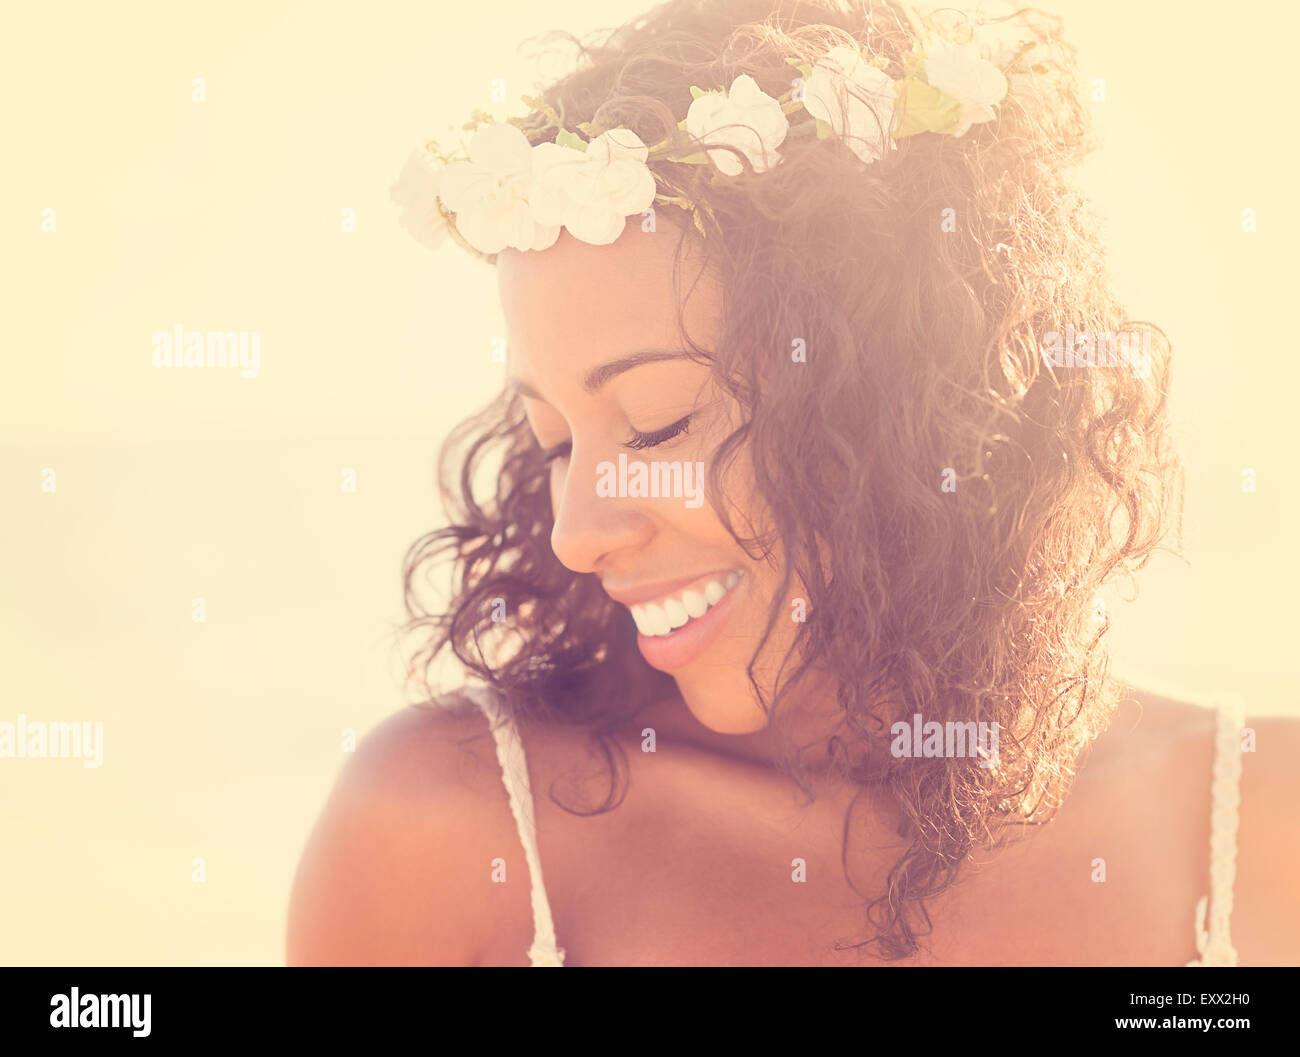 Young woman wearing wreath Photo Stock